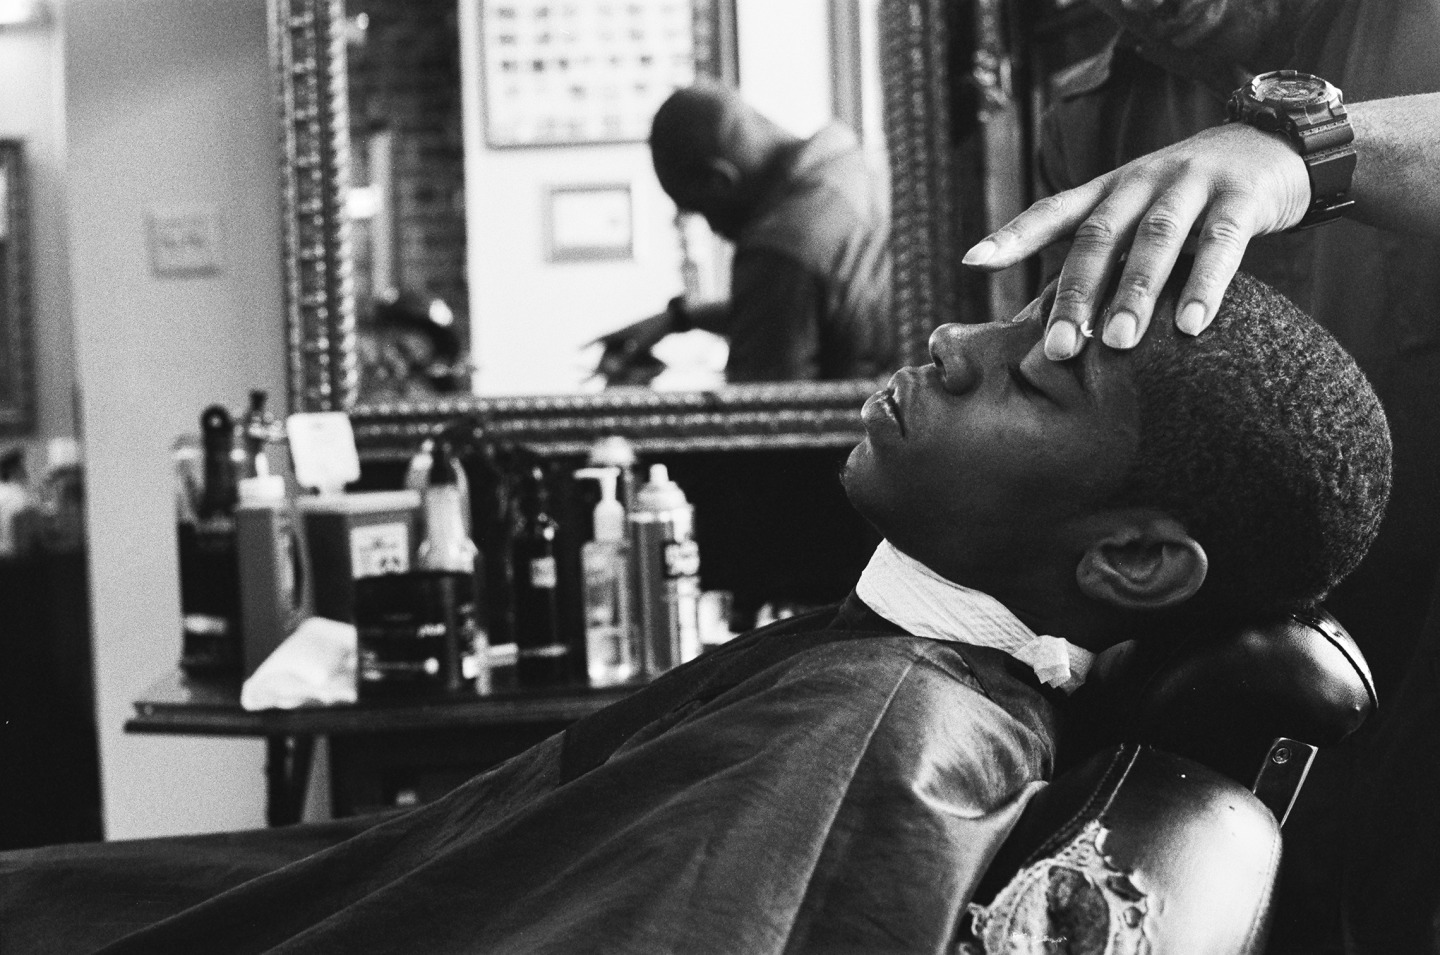 http://thefader-res.cloudinary.com/private_images/w_1440,c_limit,f_auto,q_auto:best/40380002_WEB_gmcgws/levels-barbershop-new-york-ny.jpg